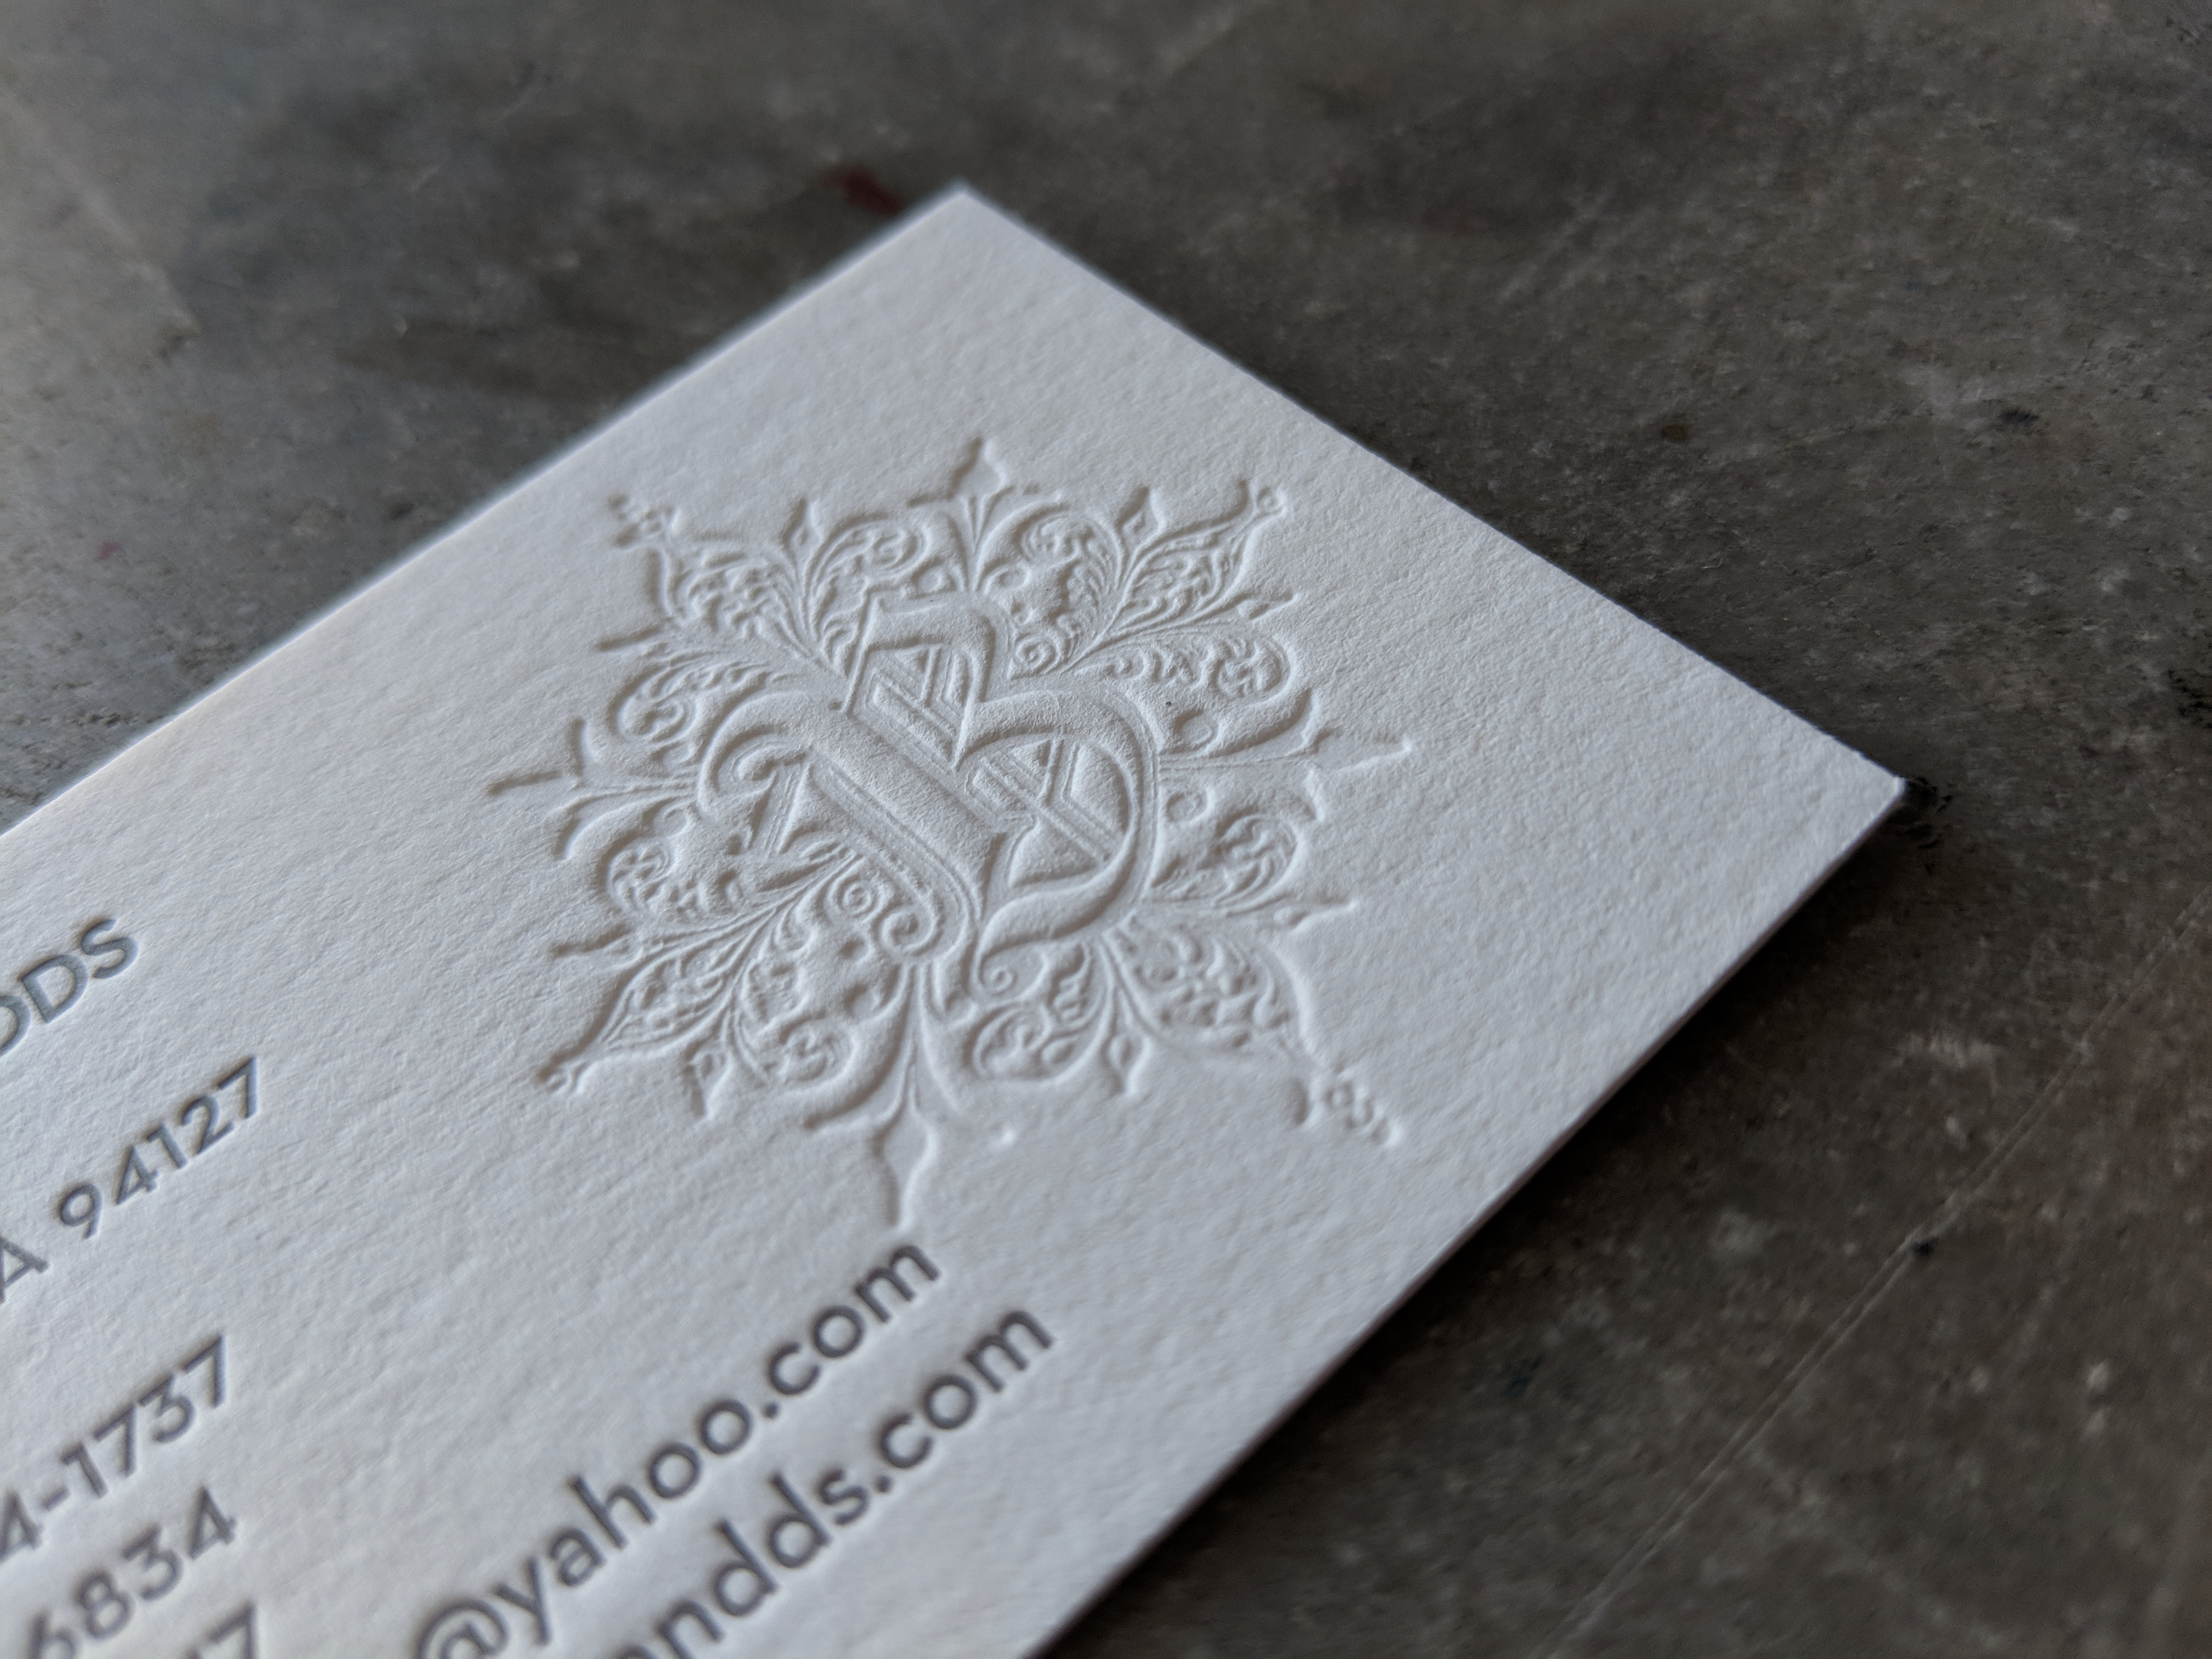 A business card, letterpress printed on premium off-white cotton paper, in two colors; info is printed in a dark gray and the ornate logo is printed without ink (blind deboss)